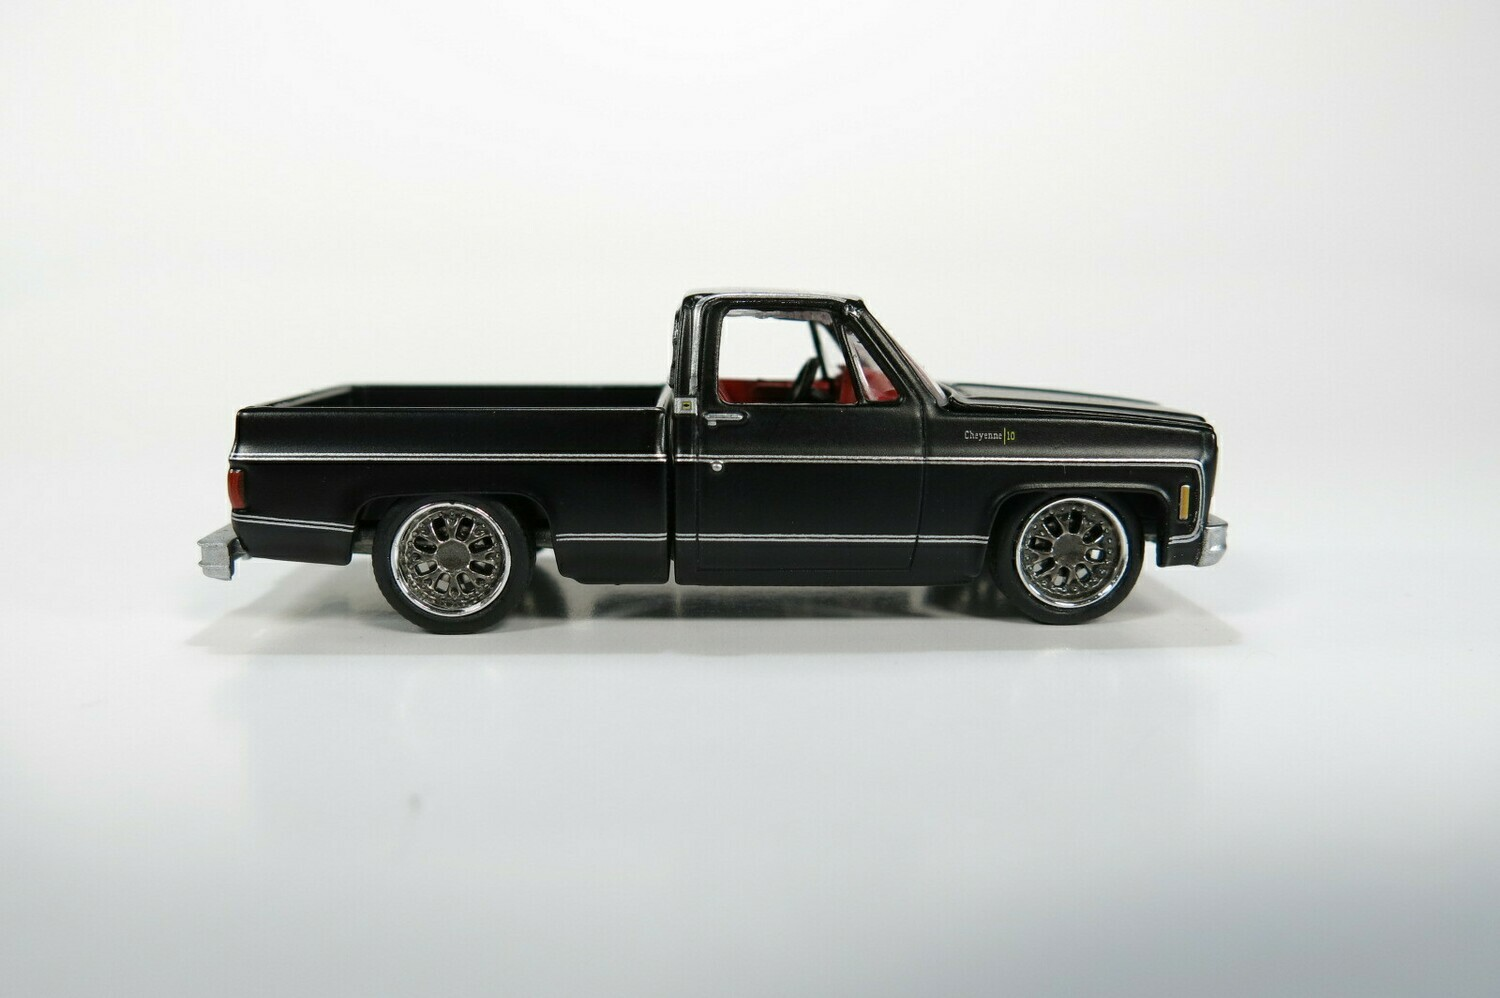 Weekend of Wheels Chevy Cheyenne Clean Truck Case of 48 Guaranteed Chase